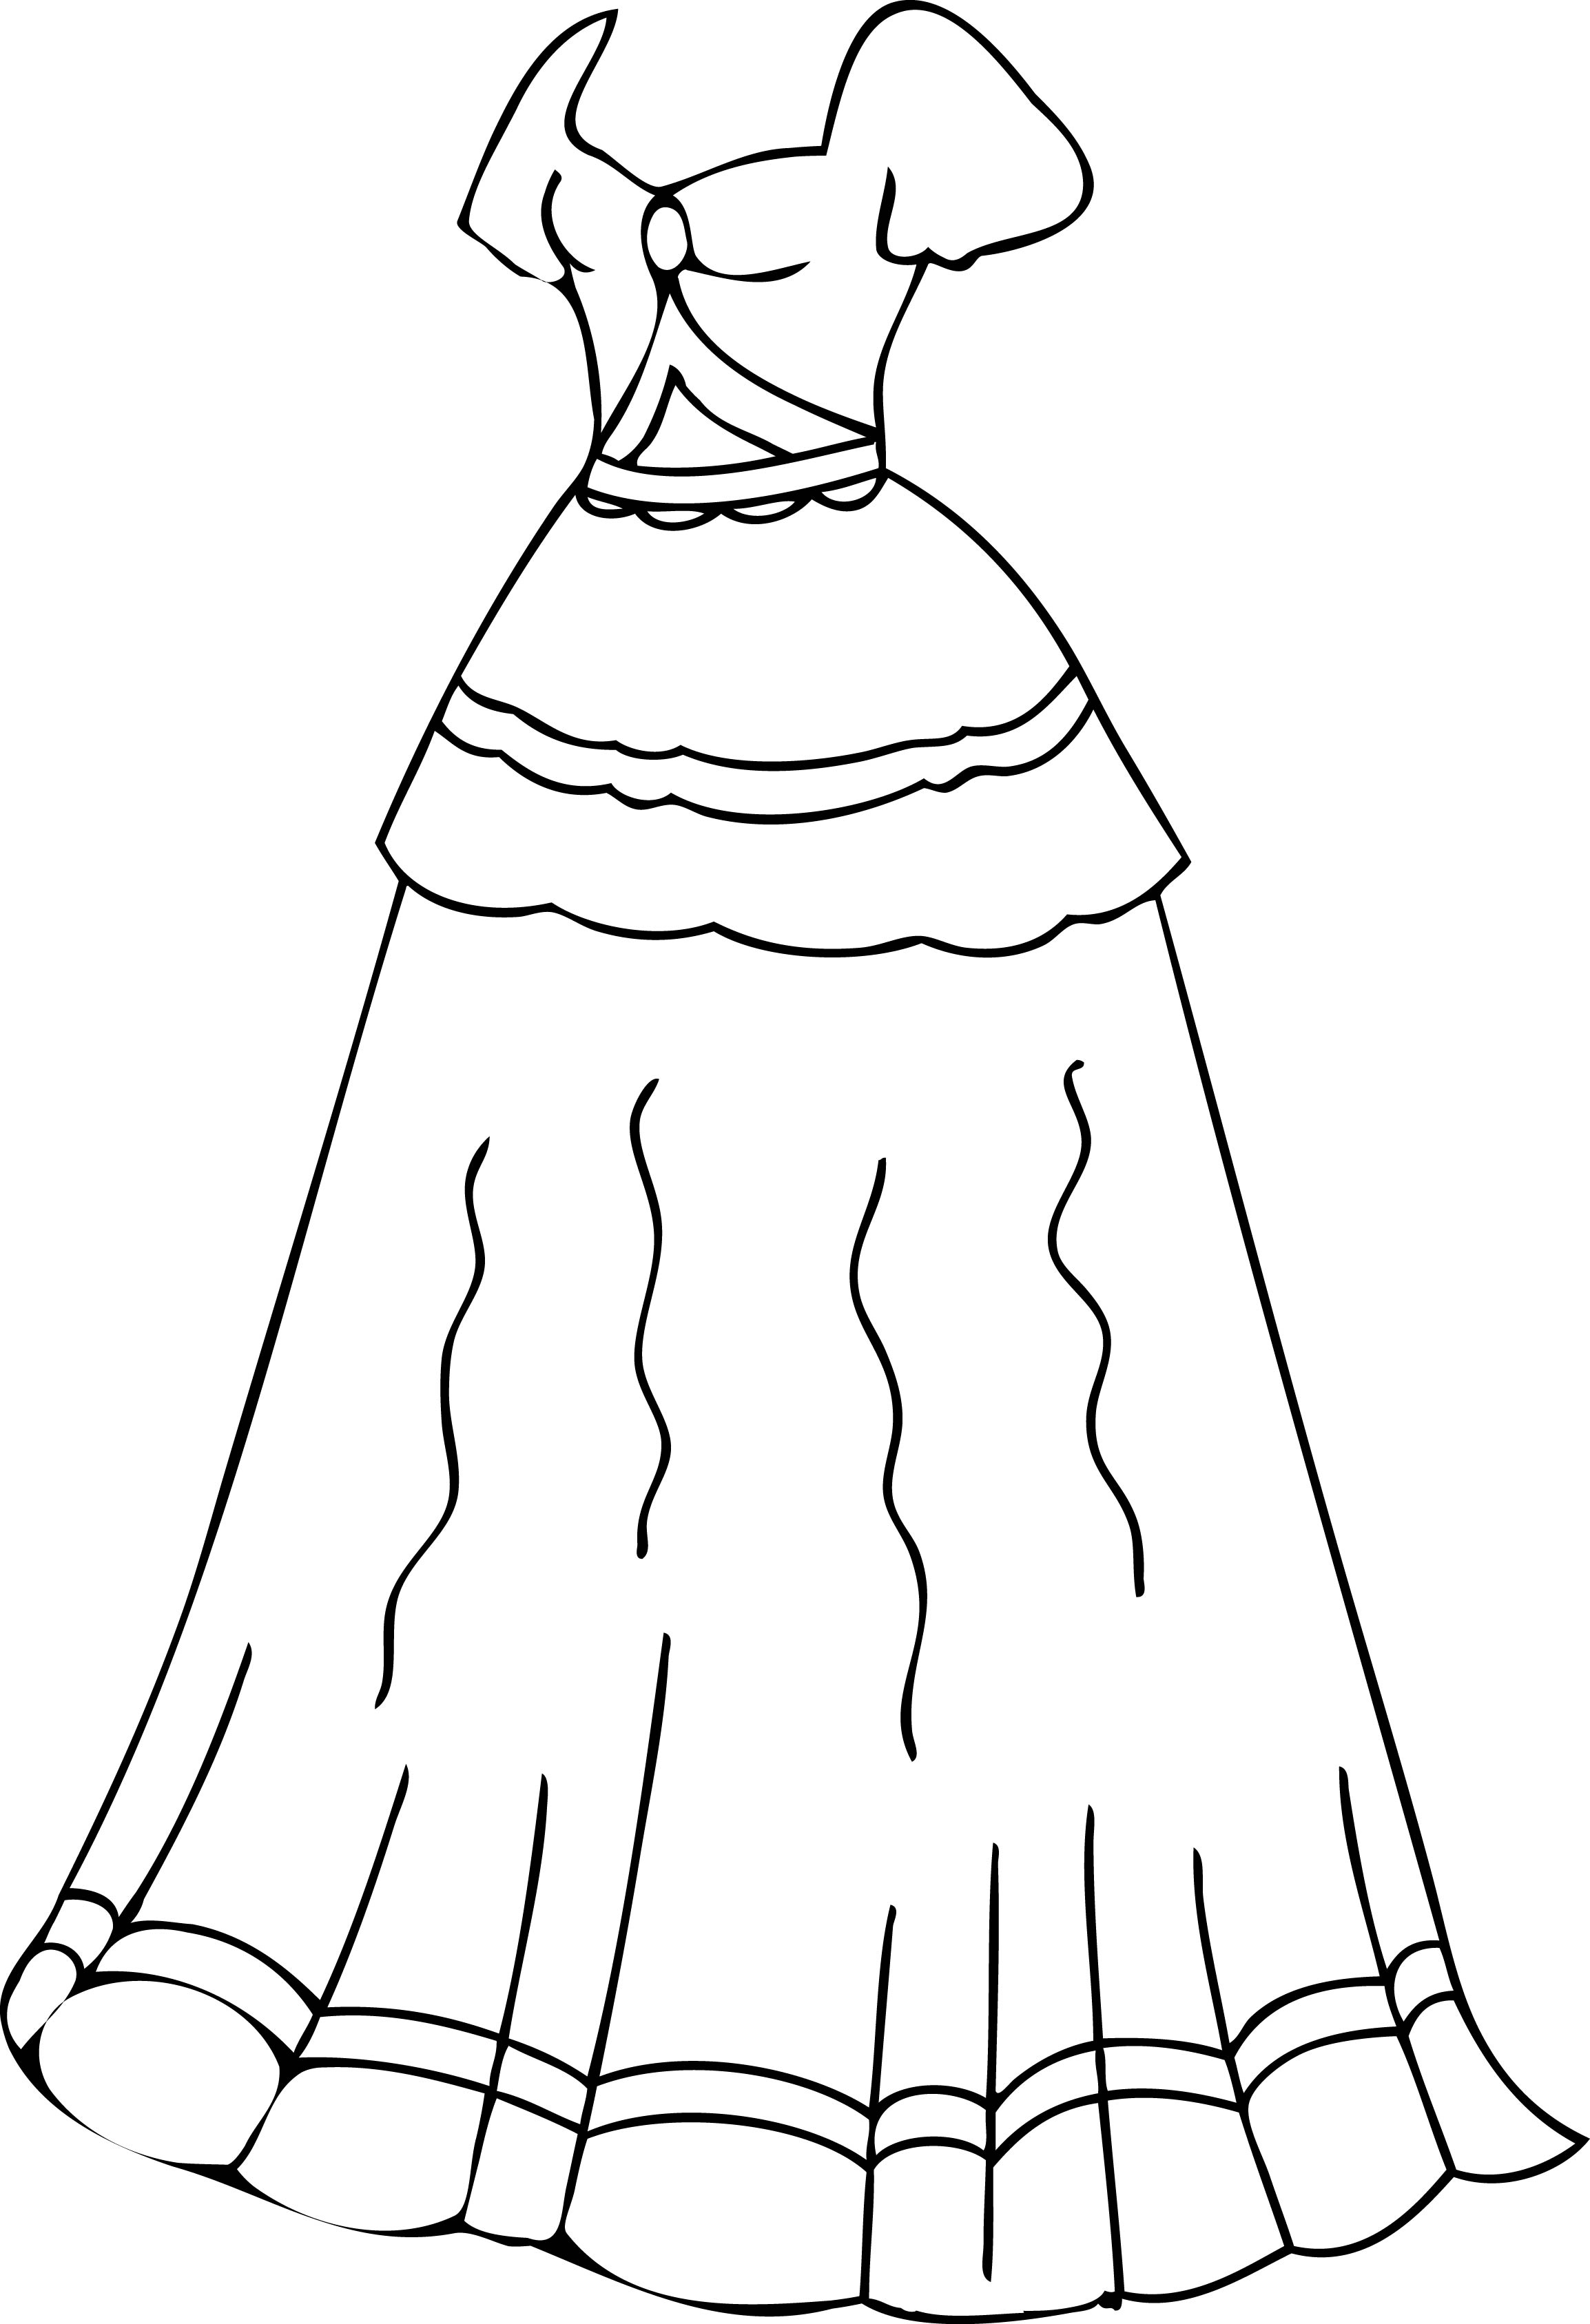 Clothing Coloring Pages For Preschoolers At Getcolorings